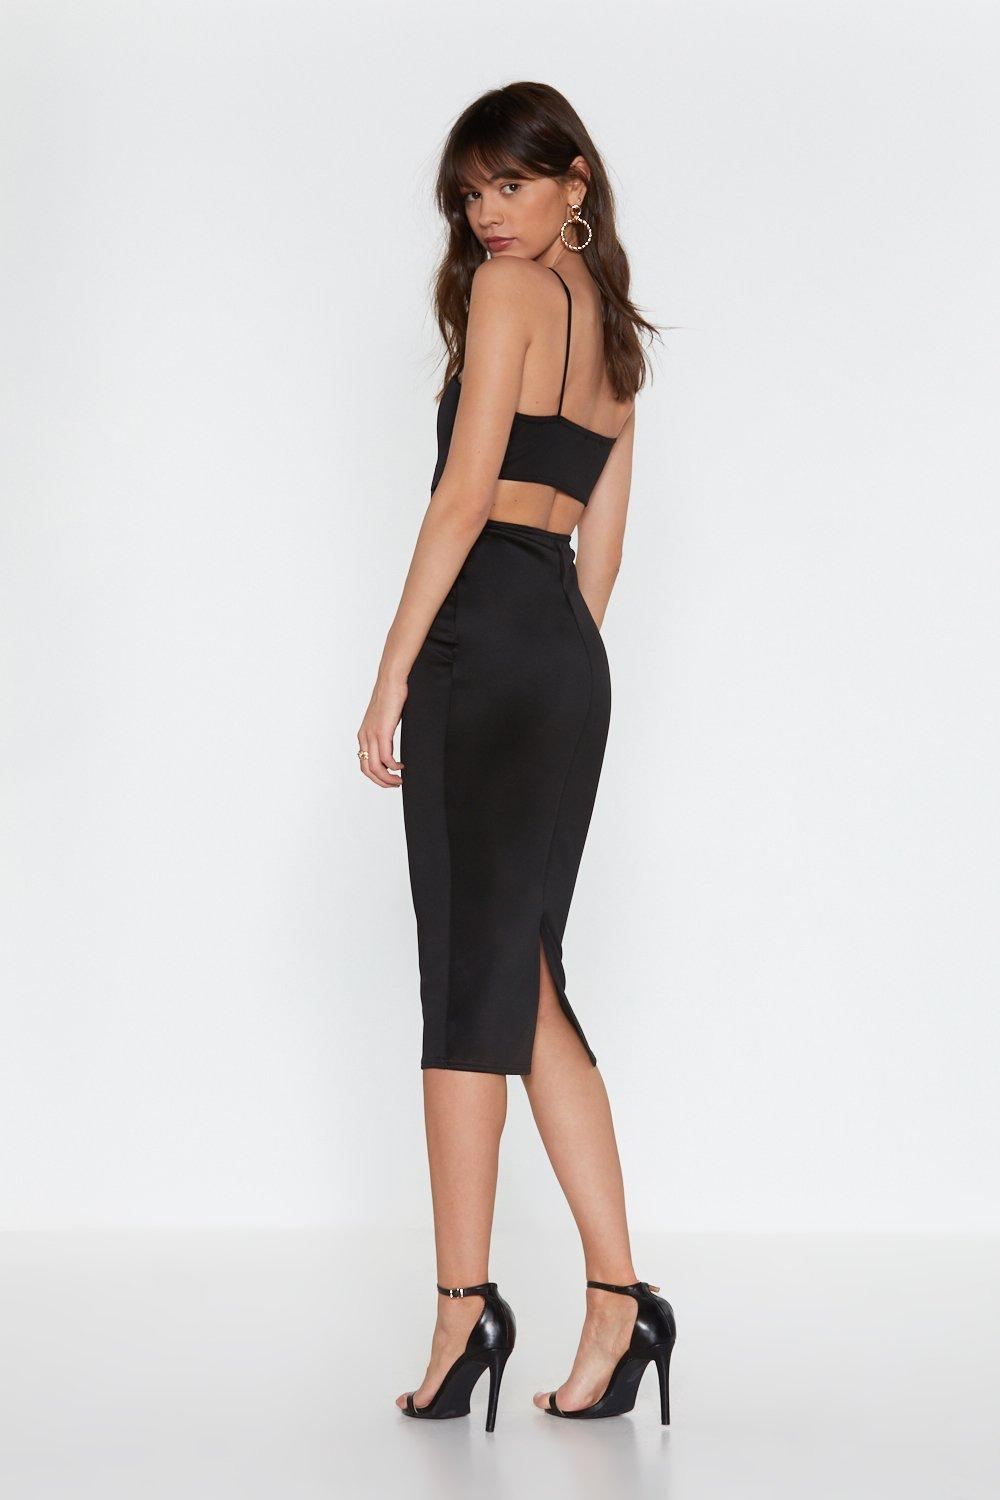 34f47a24a01 Womens Black Back in the Game Cut-Out Bodycon Midi Dress